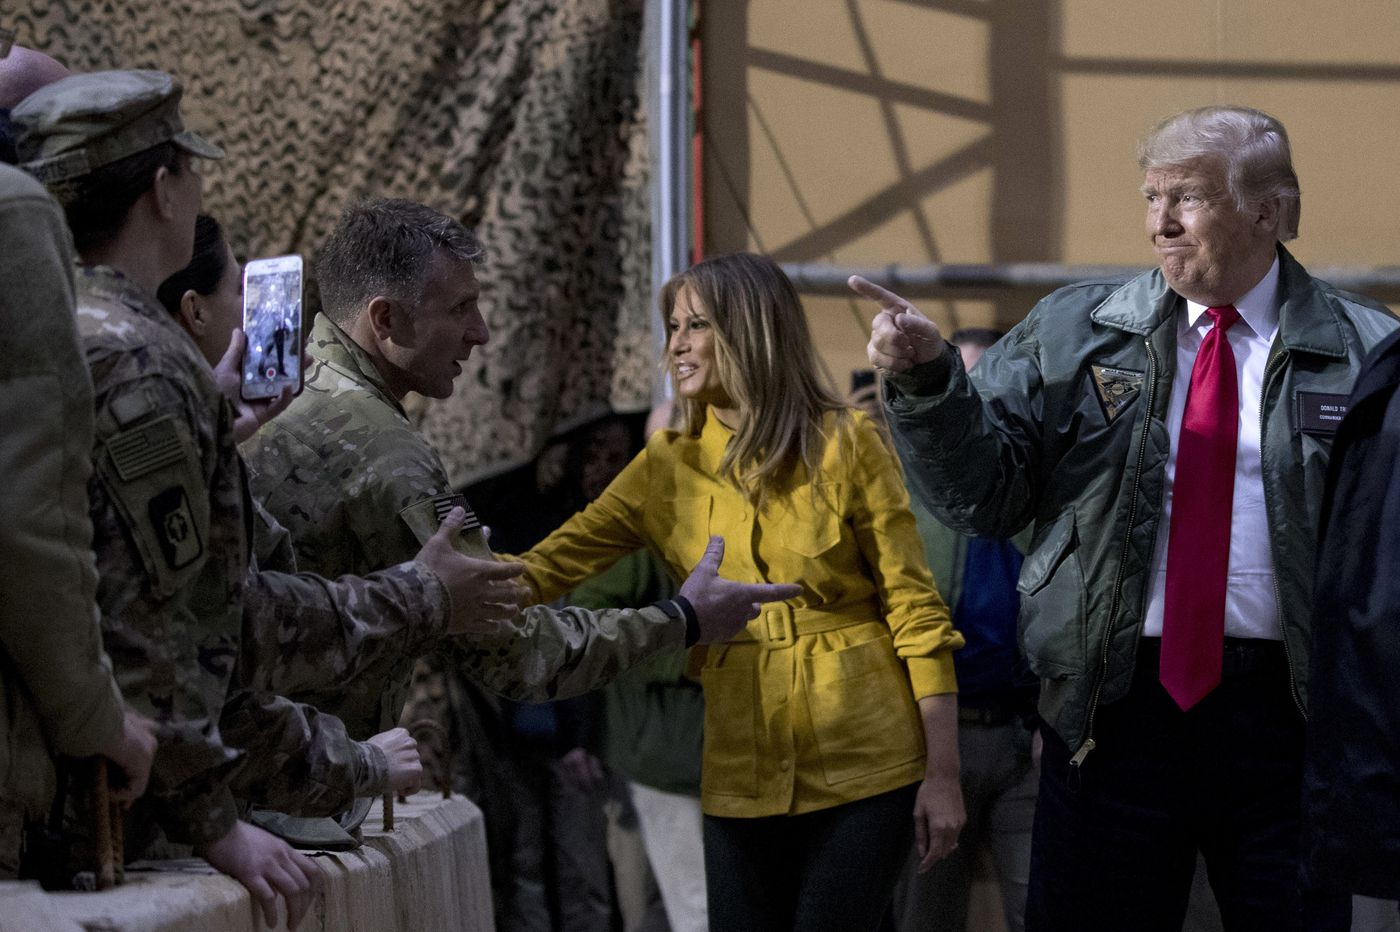 U.S. forces will stay in Iraq, could reenter Syria from there, Trump says